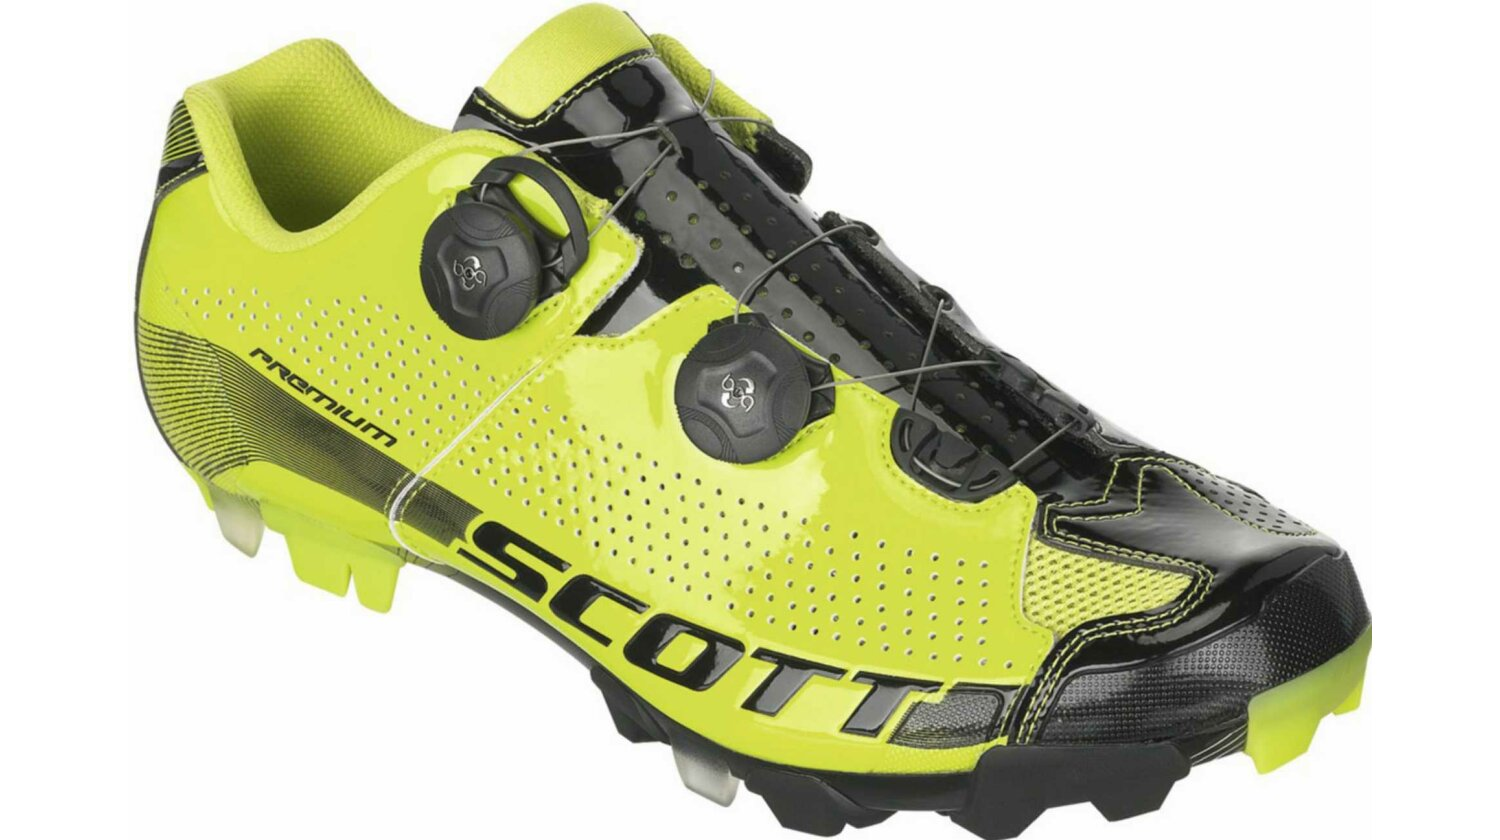 Scott MTB Premium Schuh green/black gloss 46